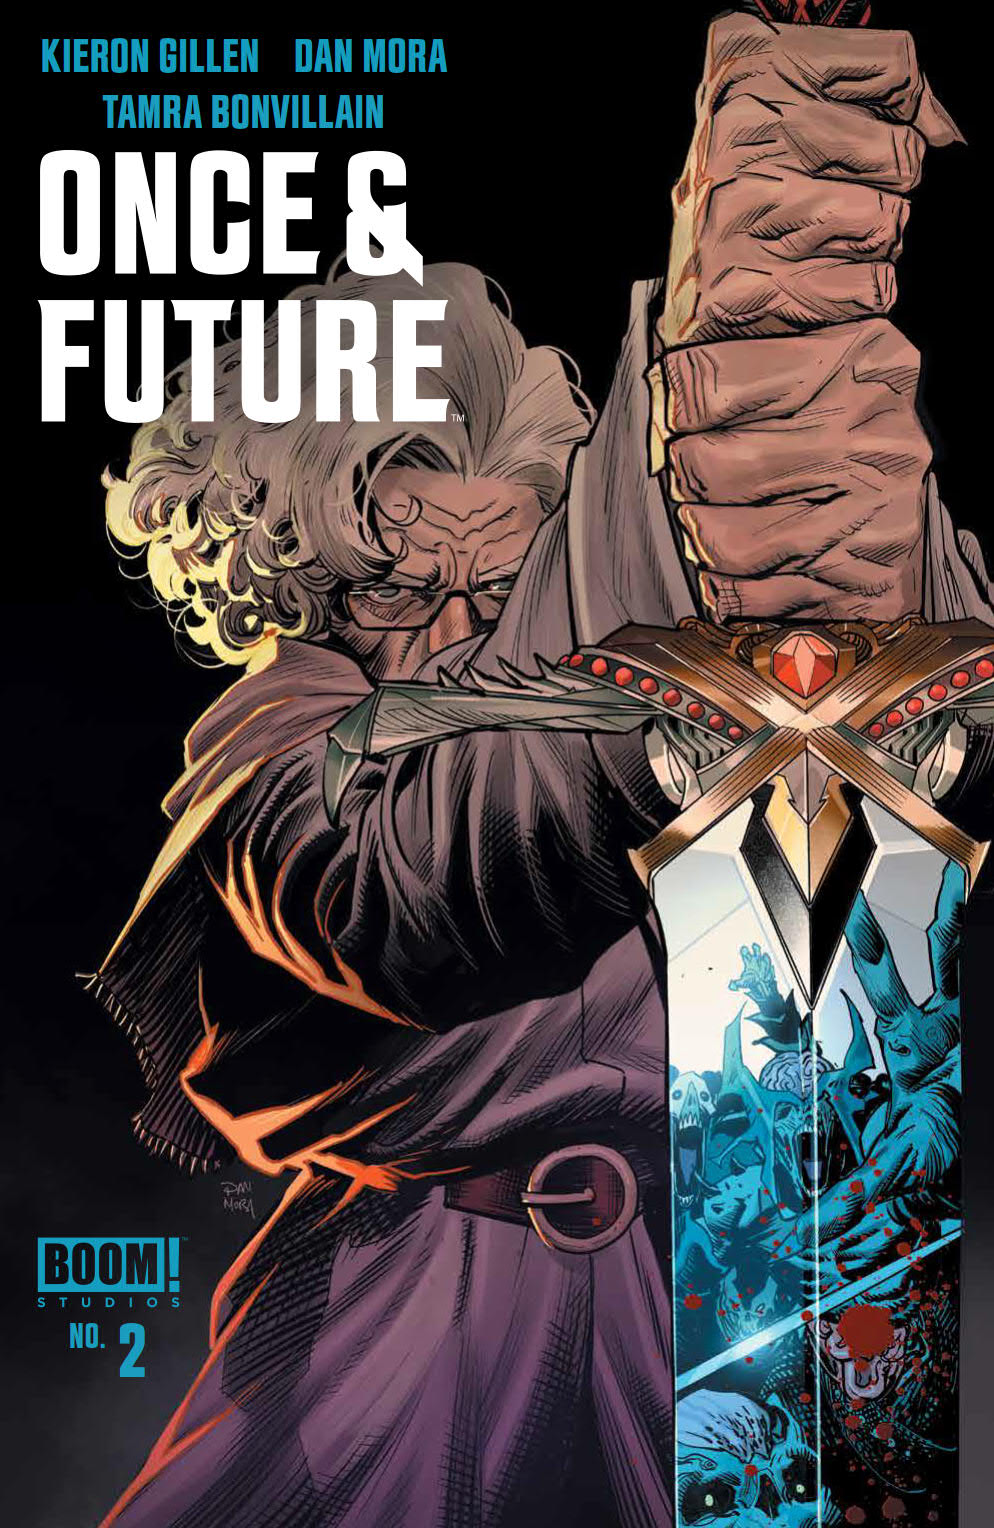 Once & Future #2 Gets a Third Printing Before Release